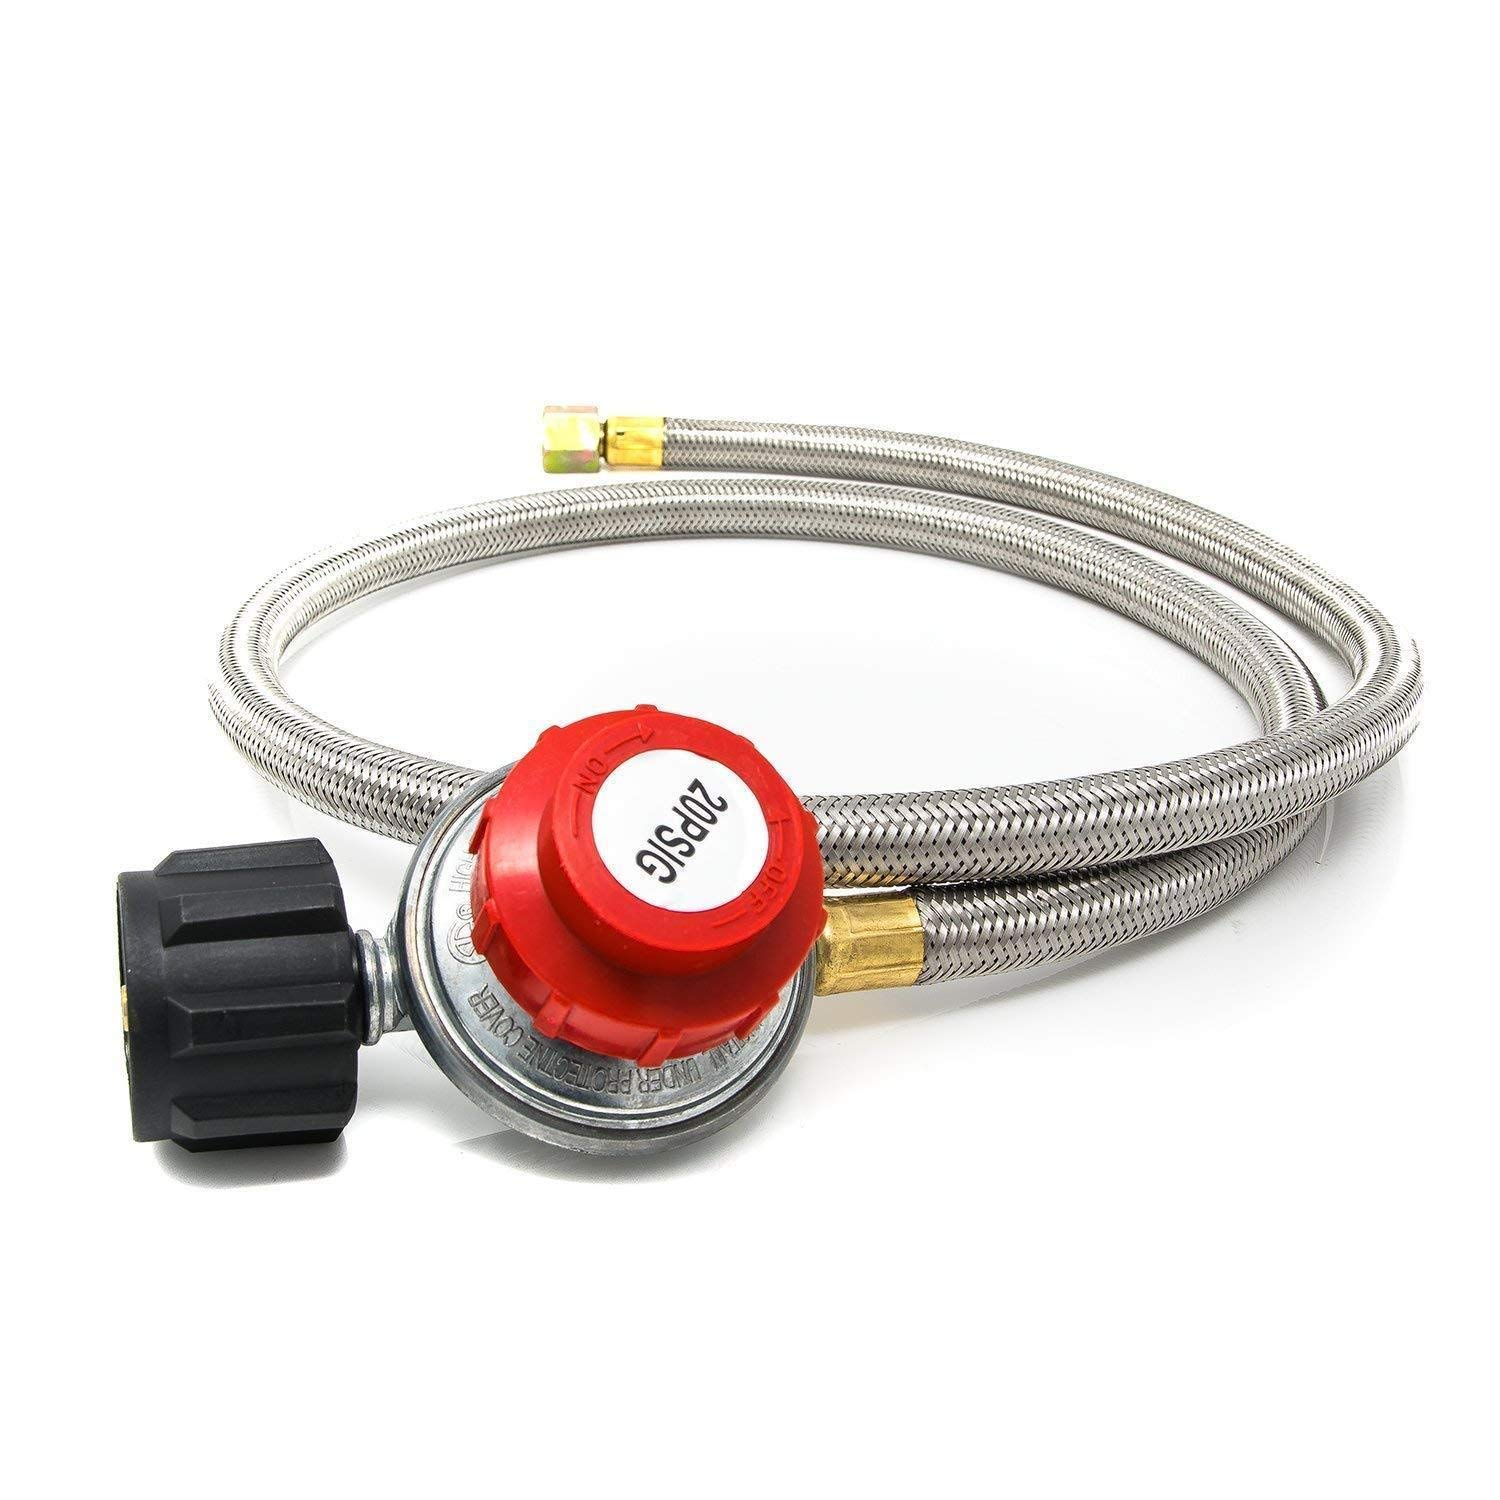 GasOne 2113 QCC-1 Type Hose-CSA Certified-Works with Newer U Gas One 4FT High Pressure Propane 0-20 PSI Adjustable Regulator with 4, Steel Braided